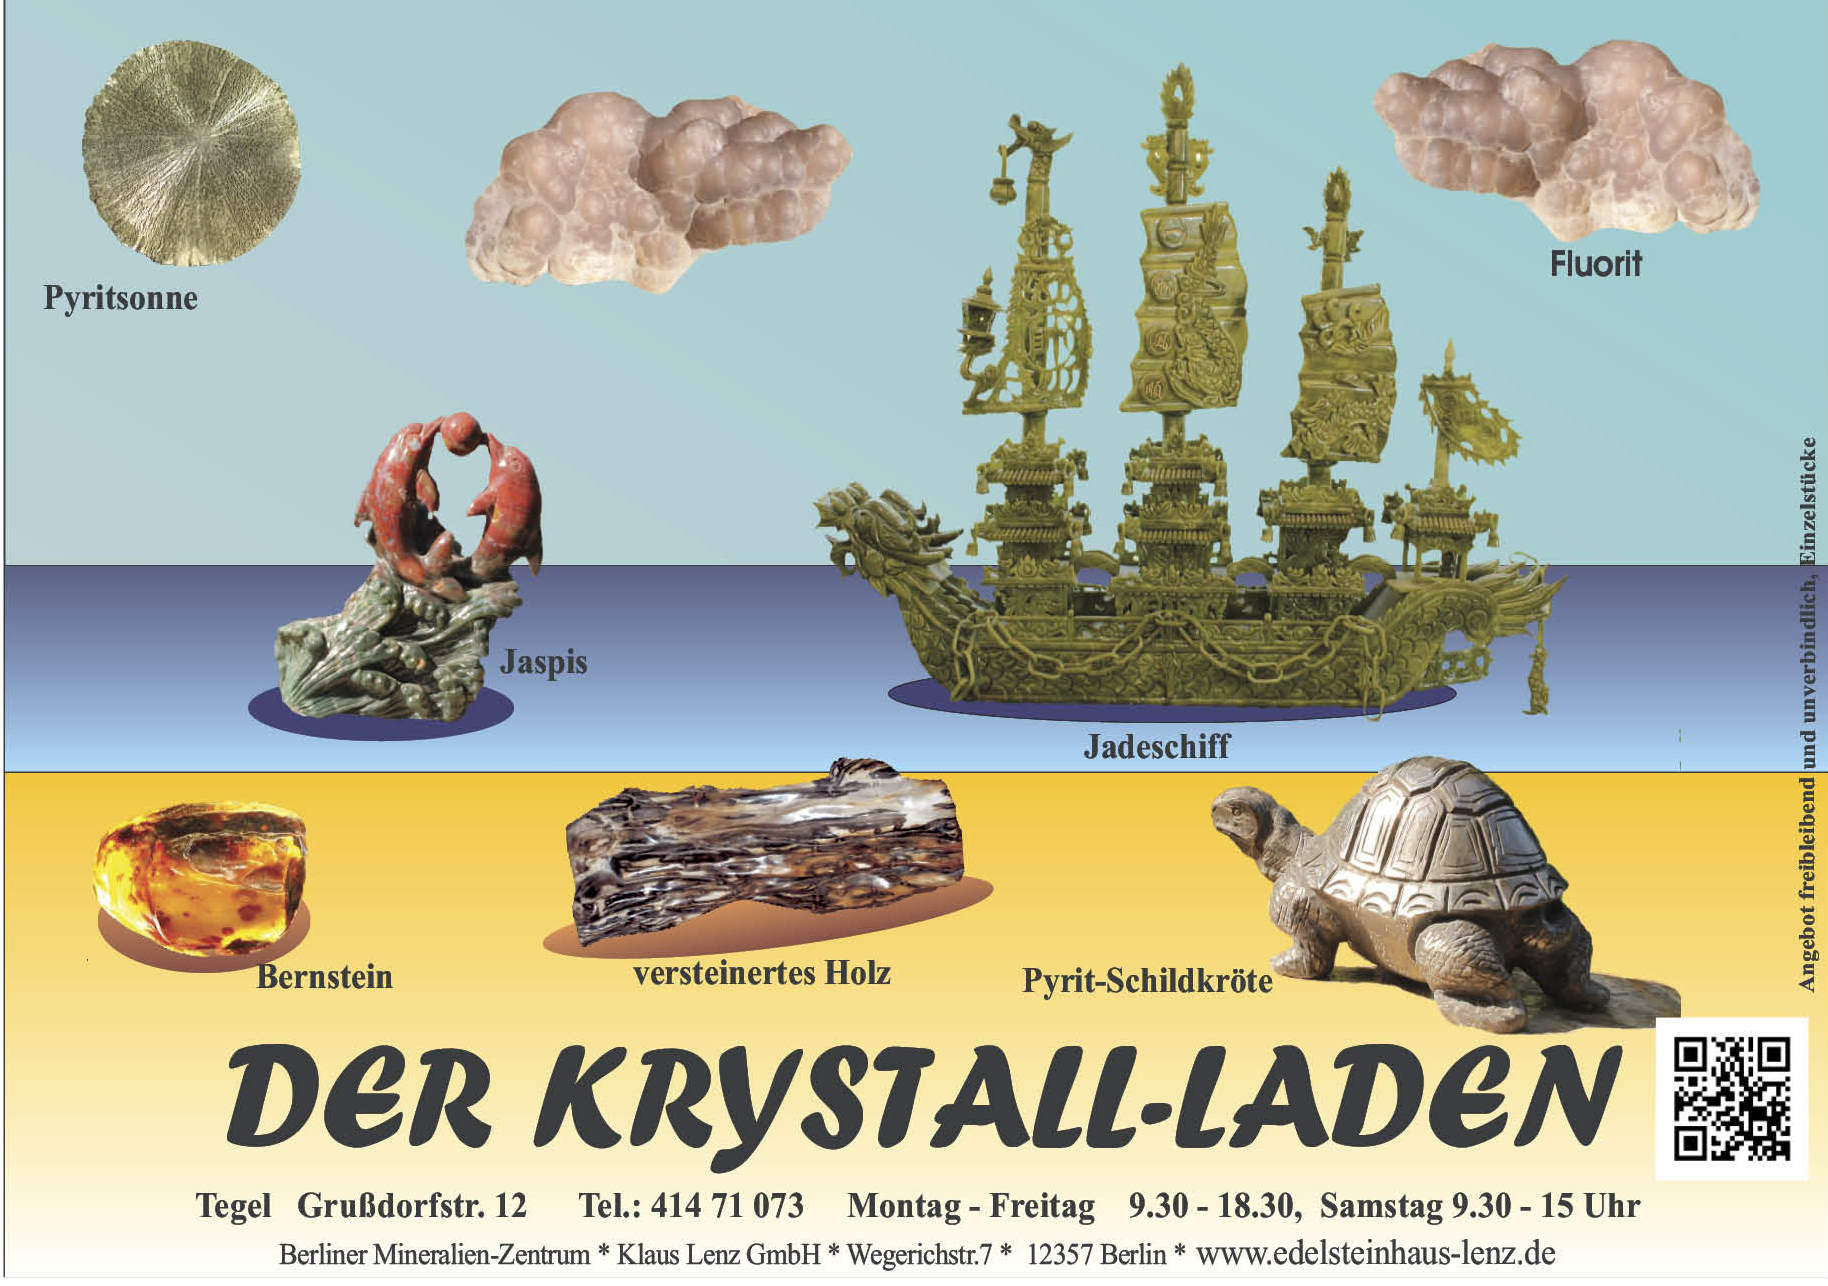 136 wp 05 Der Kristal-laden